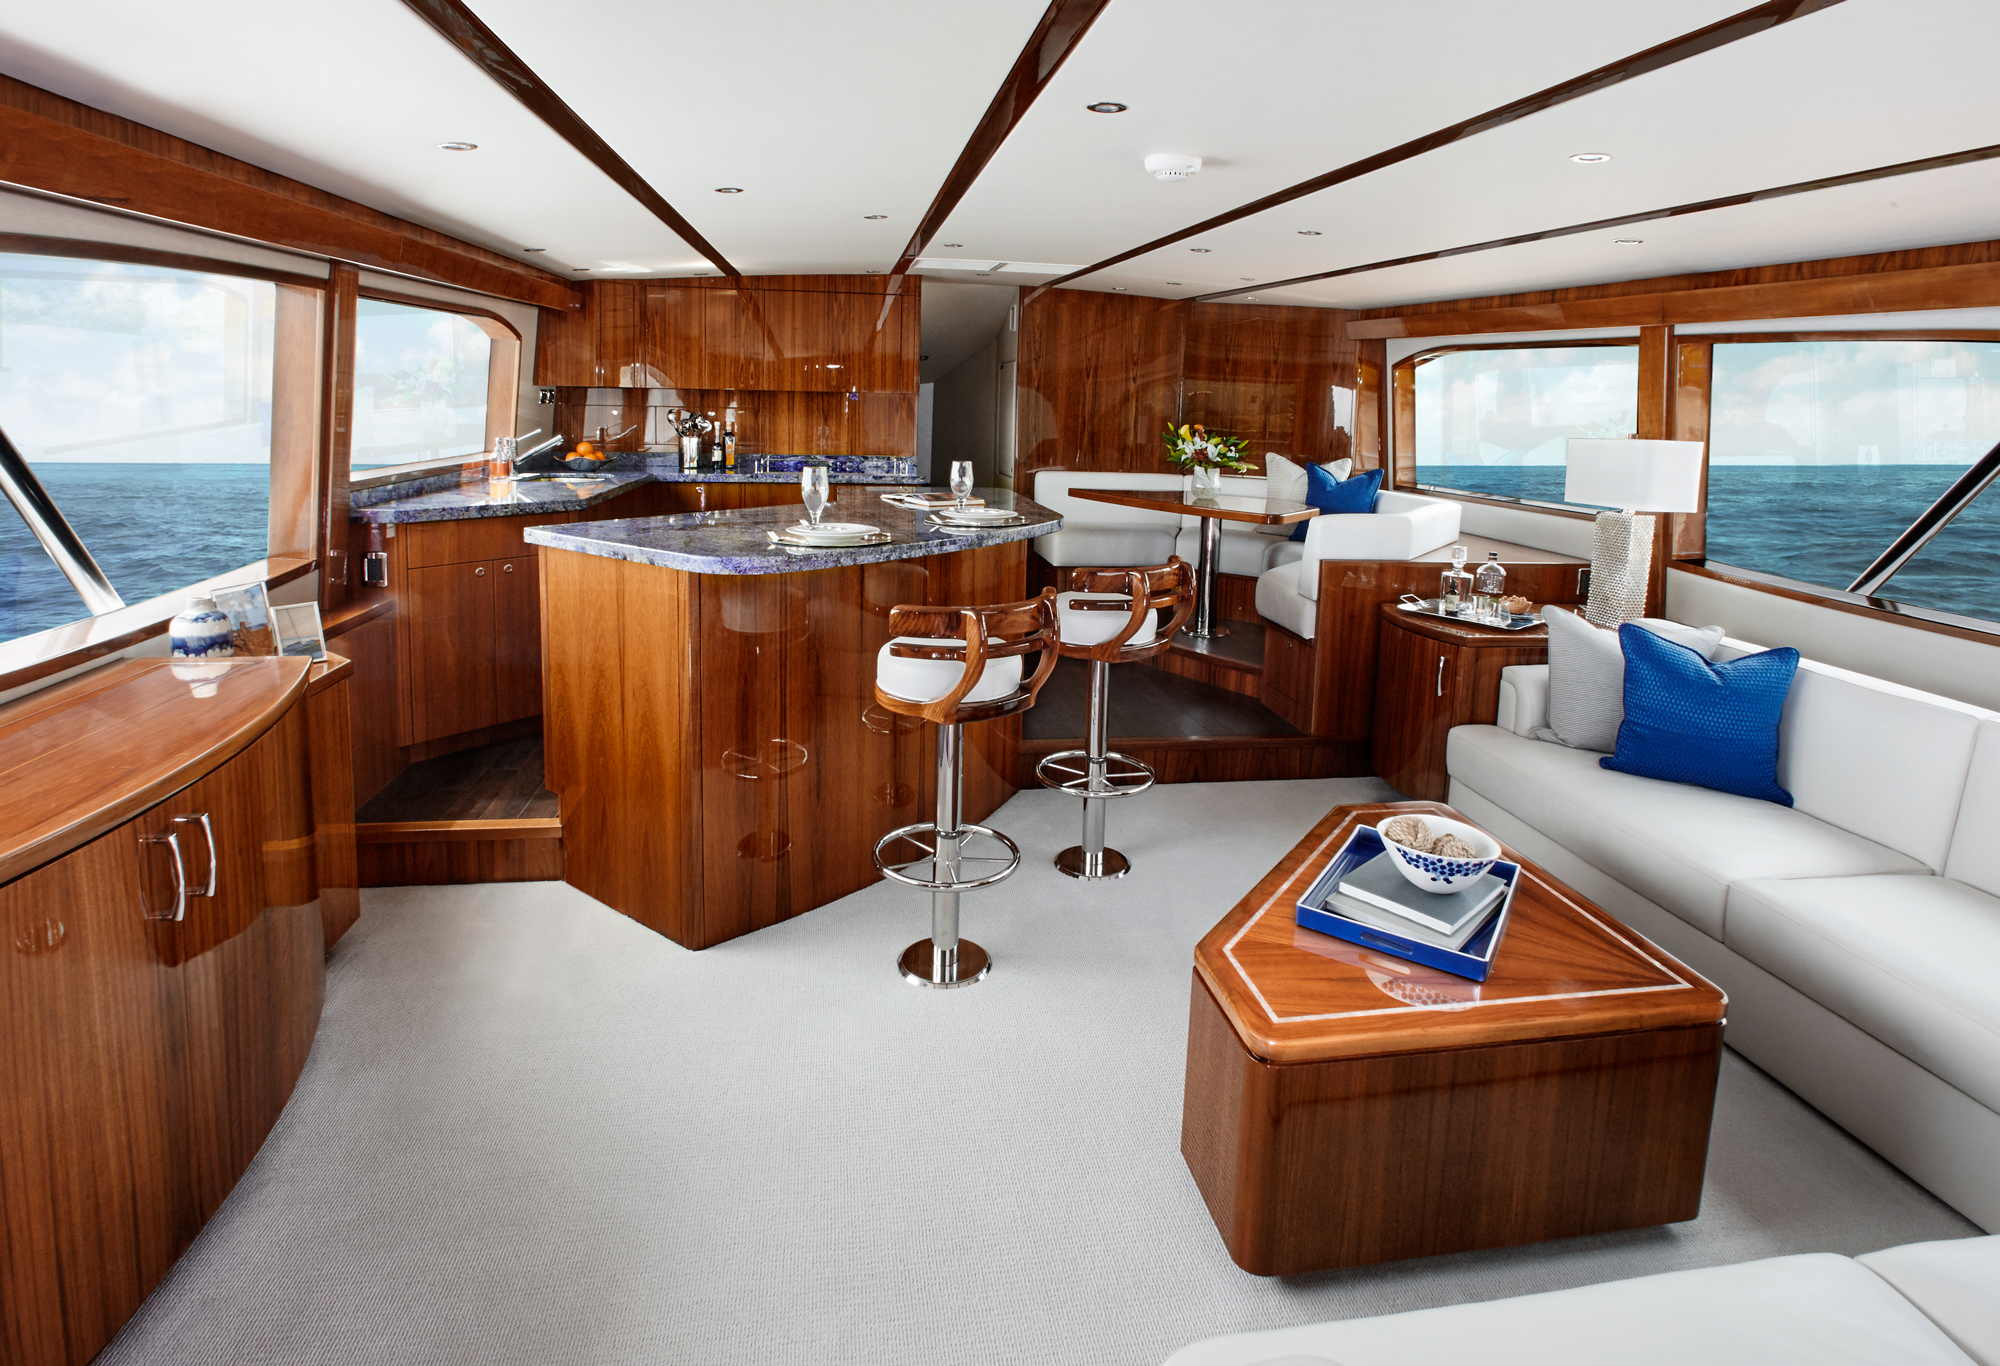 Hatteras yachts gt70 convertible sportfishing yacht for Hatteras 70 motor yacht